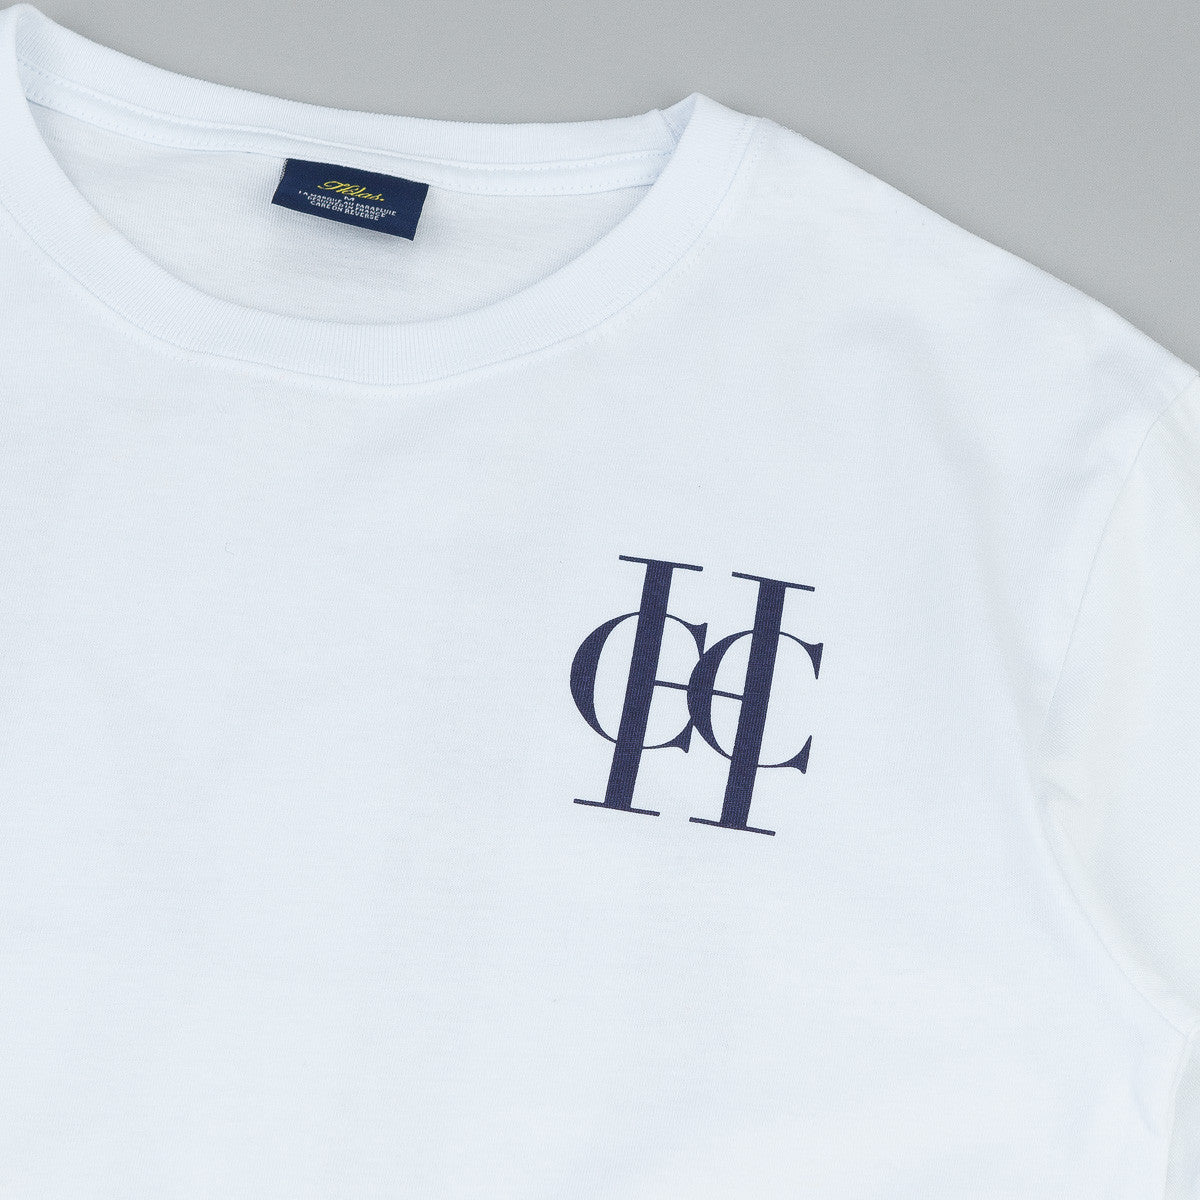 Helas HCC Caps Club T-Shirt - White